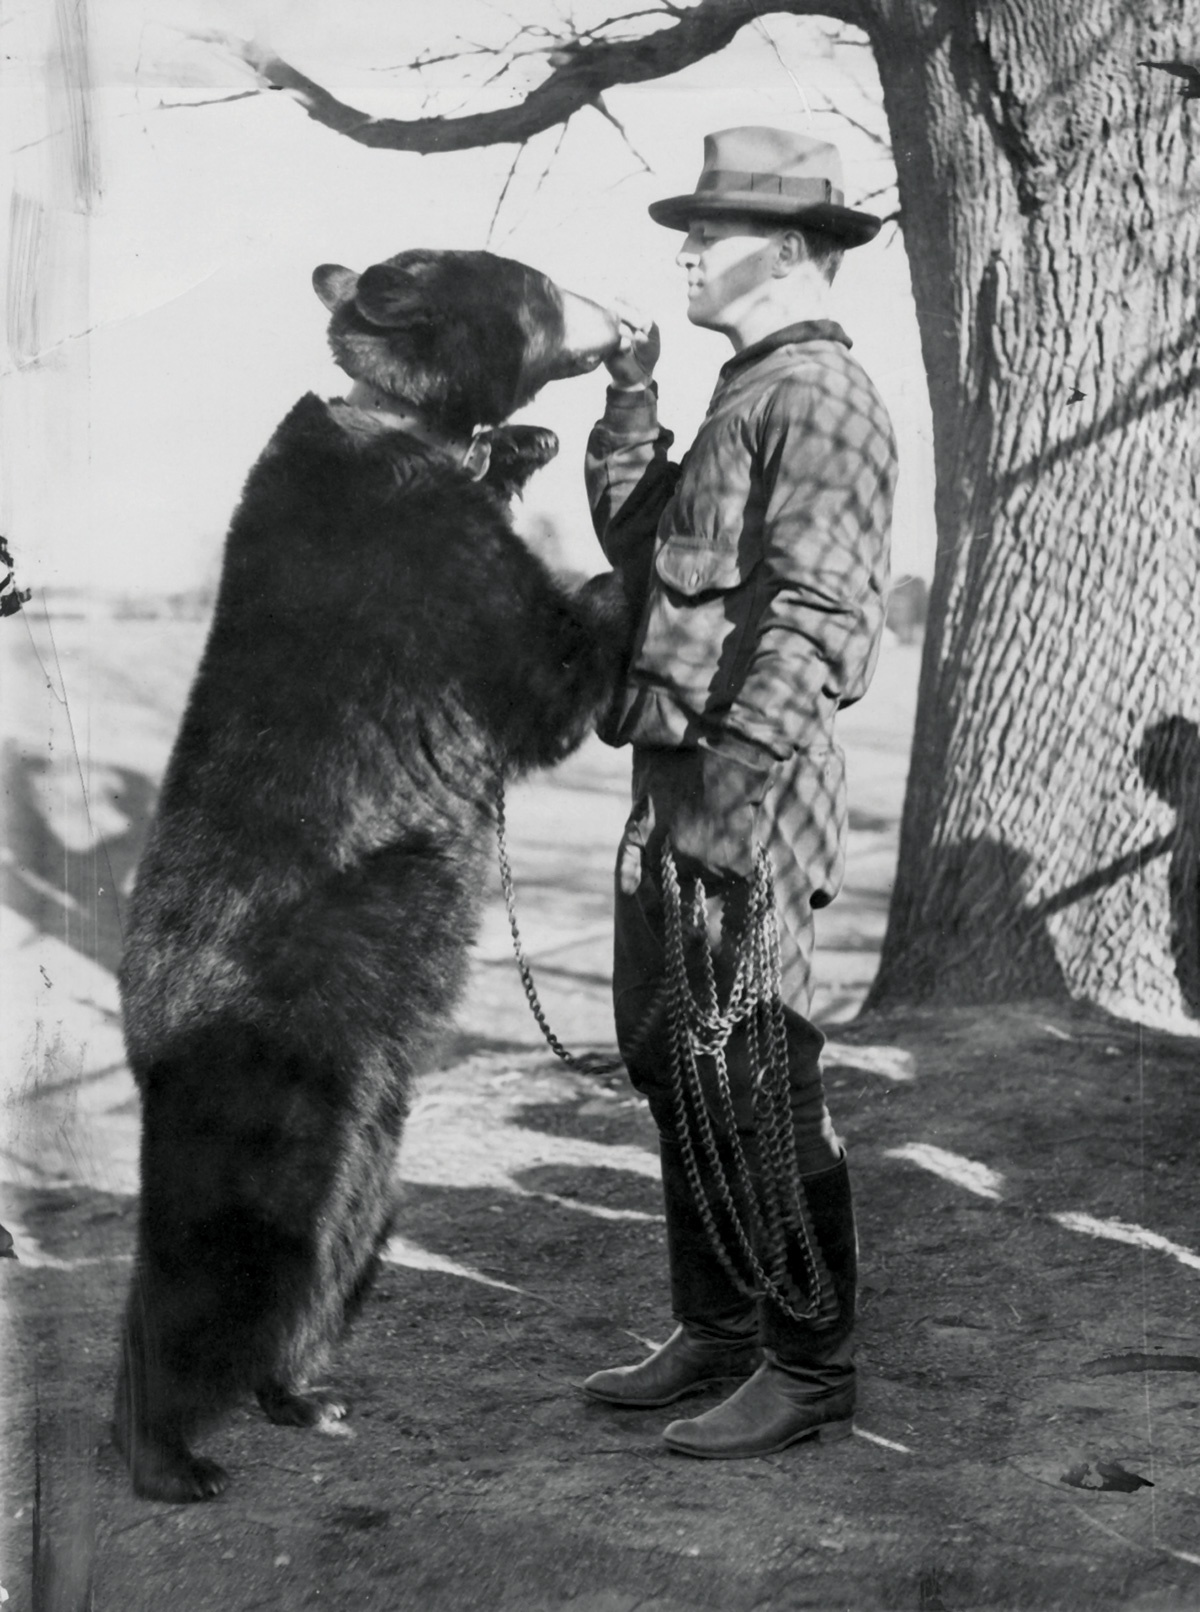 A vintage photograph of a bear standing next to its handler.